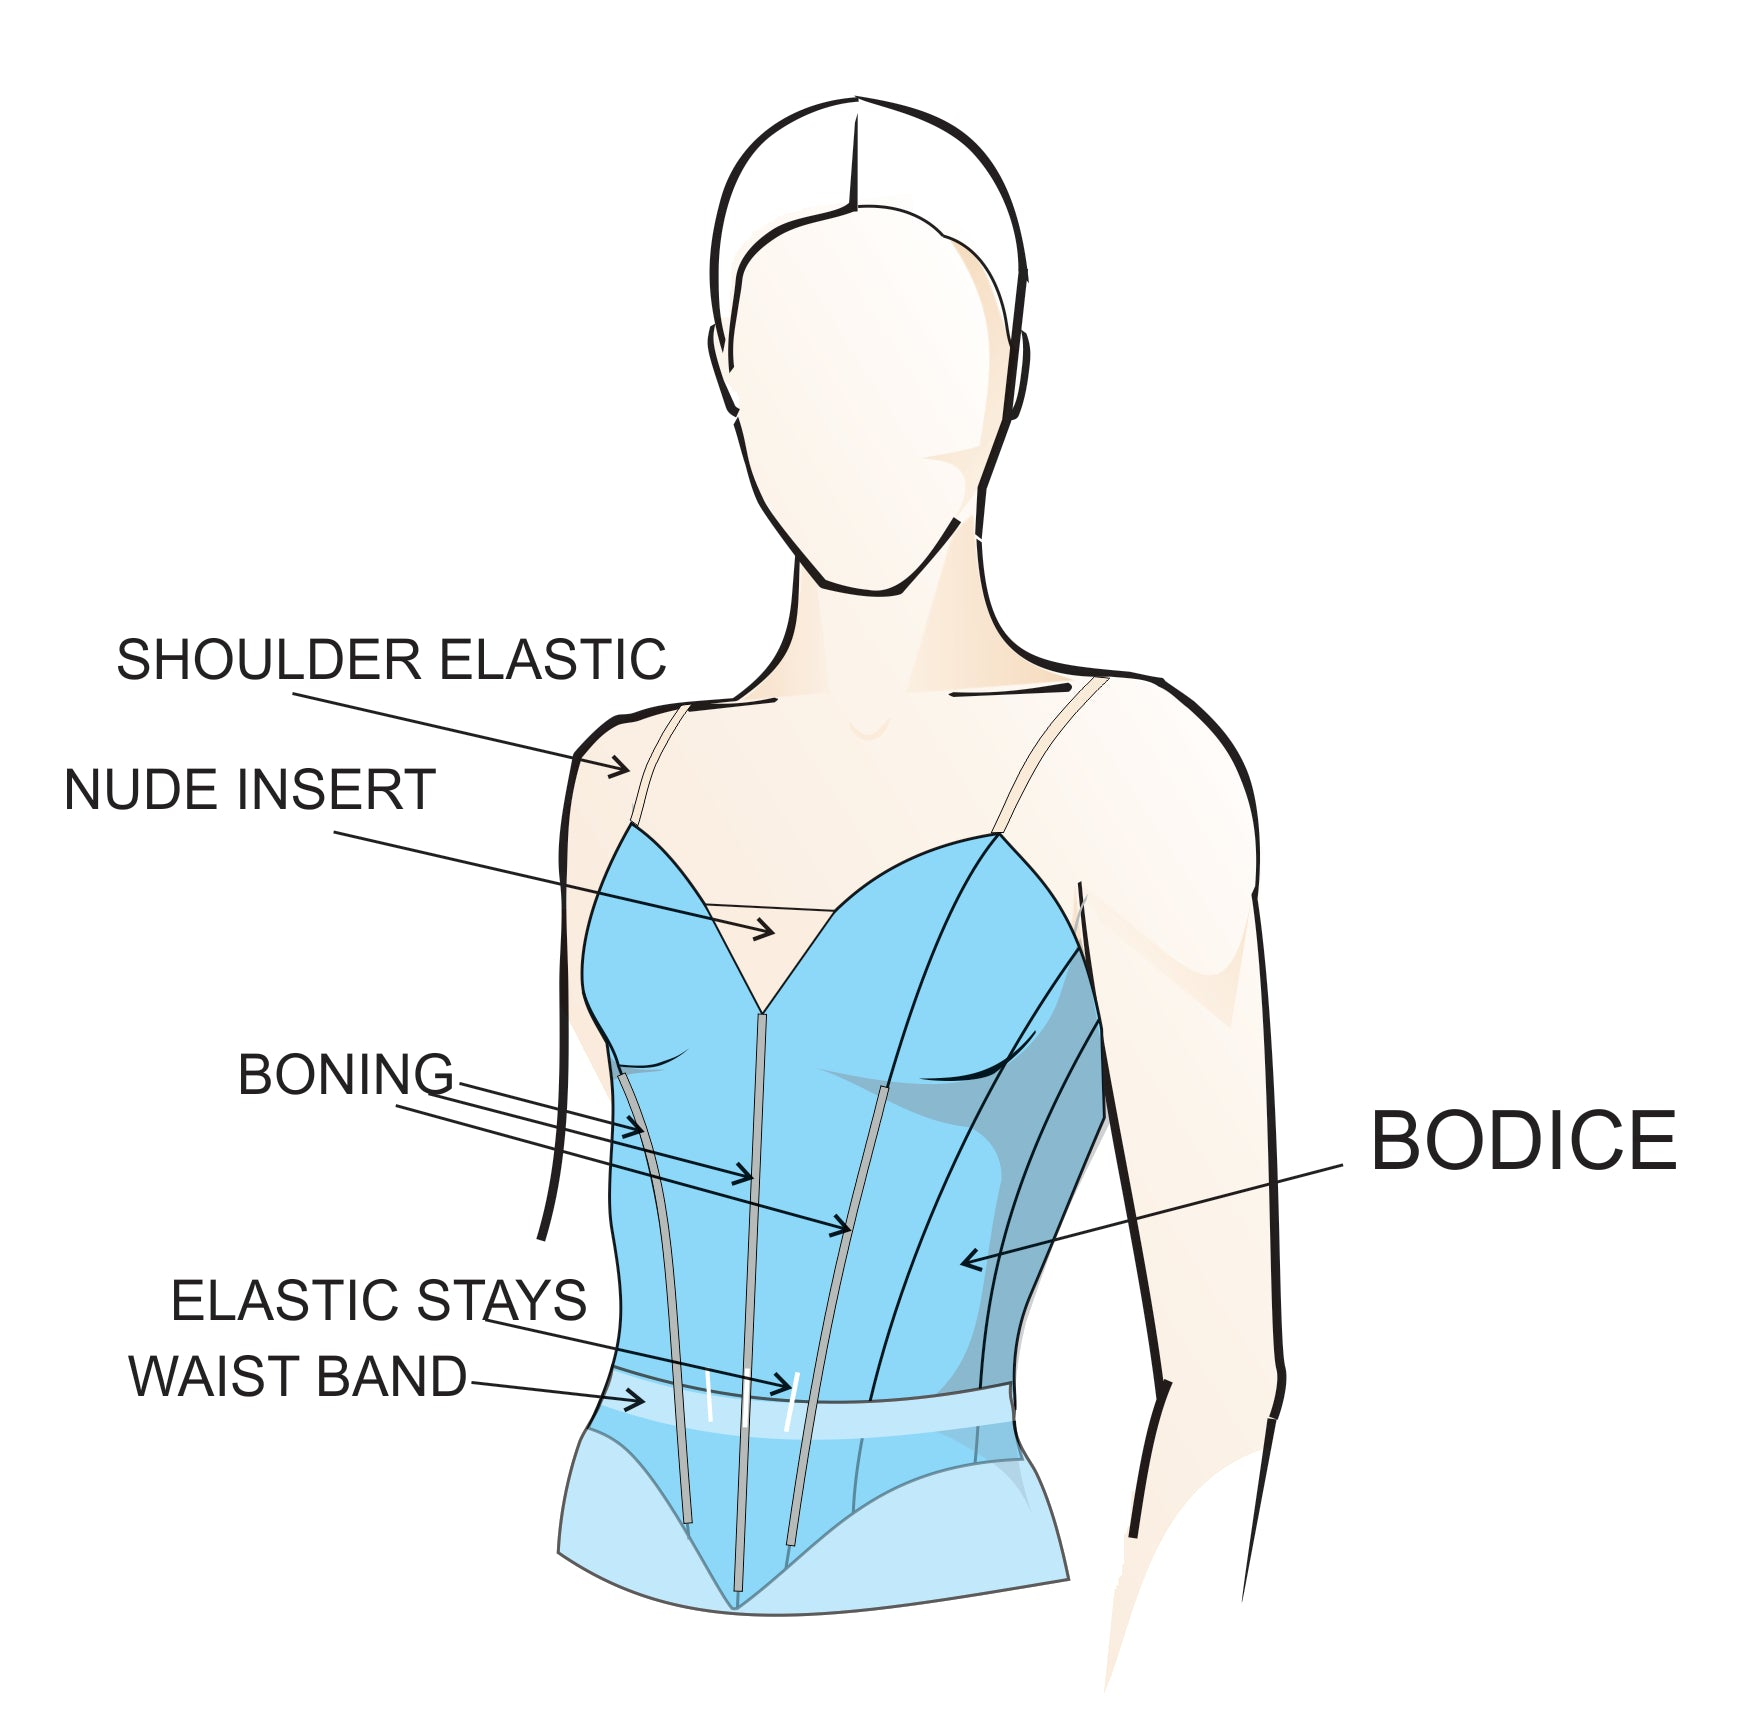 Bodice Diagram, anatomy, terminology, by Tutus that Dance